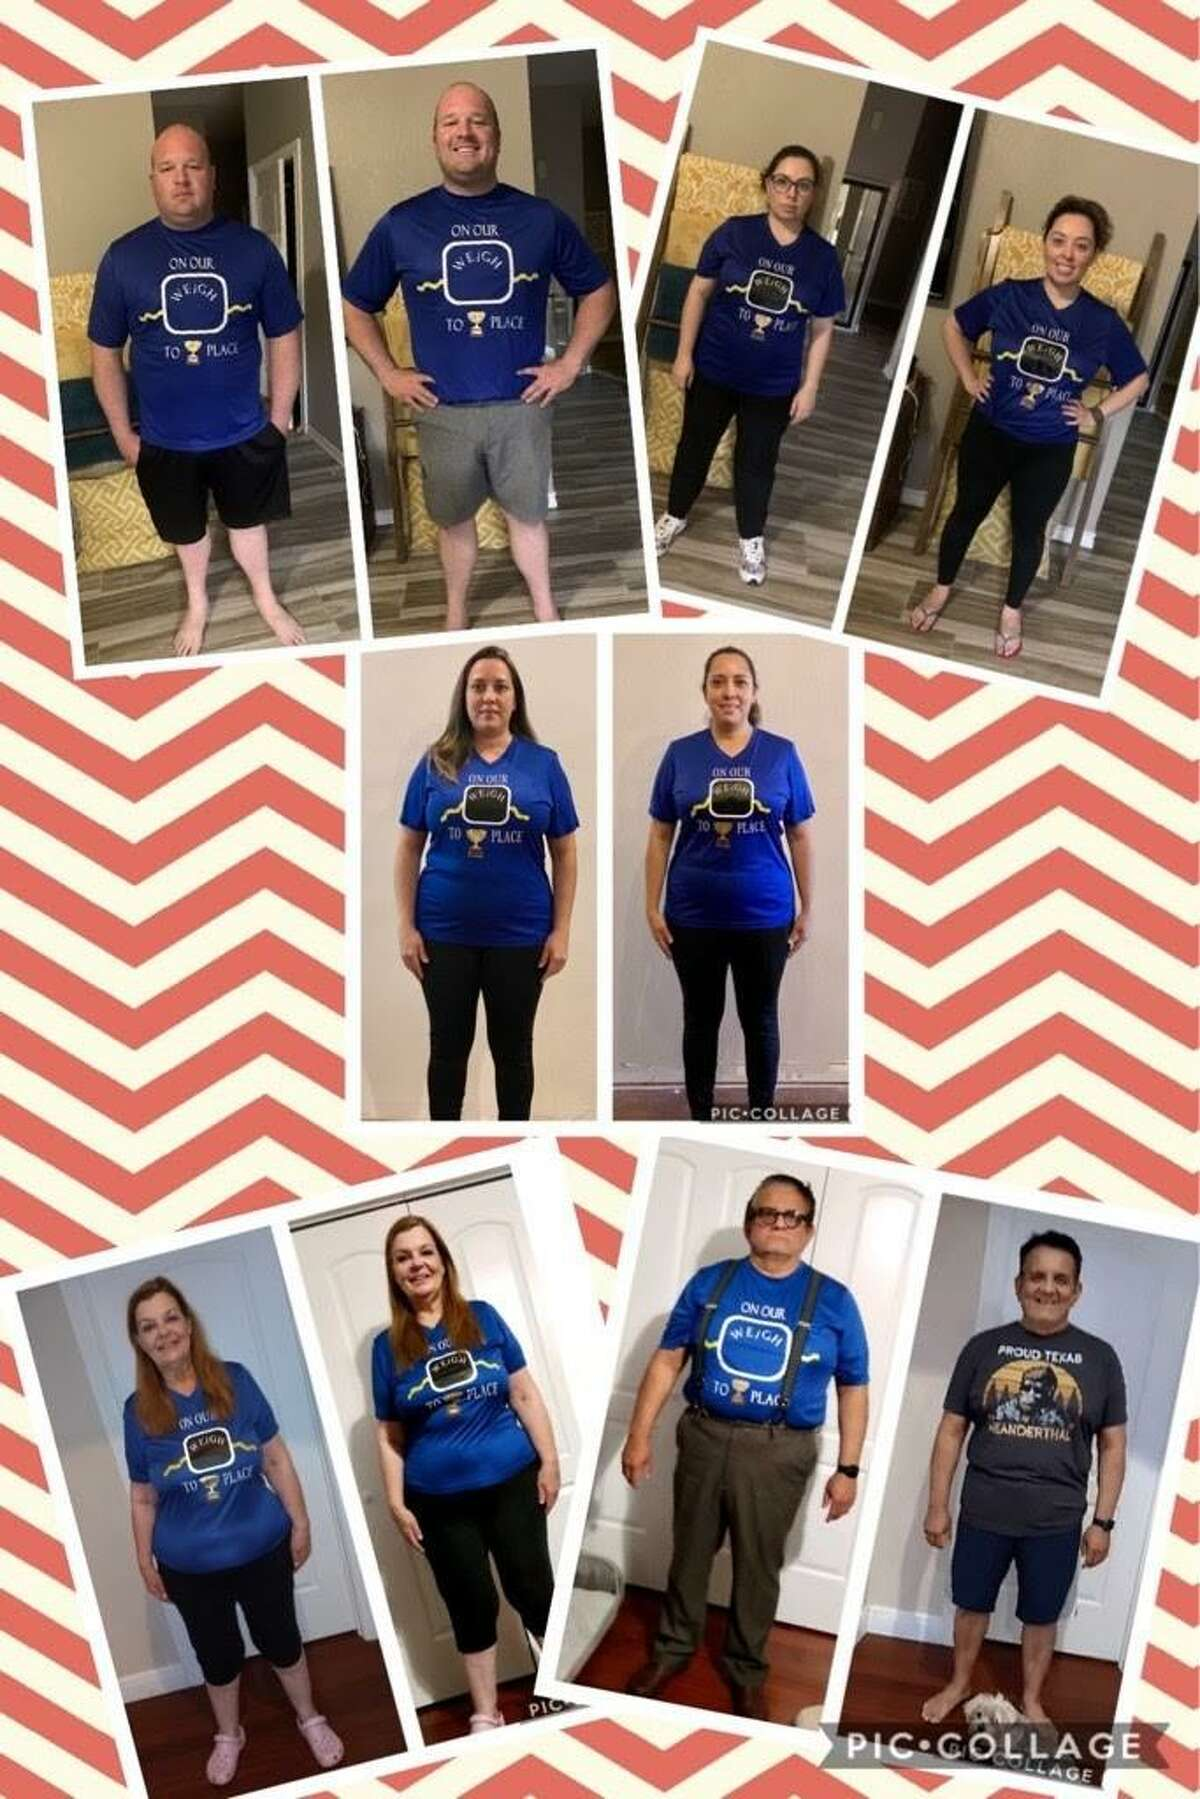 Team On Our Weigh to 1st Place pictured in their before and after photos. The group won first in their district and sixth nationally in the HealthyWage Weight Loss Challenge.